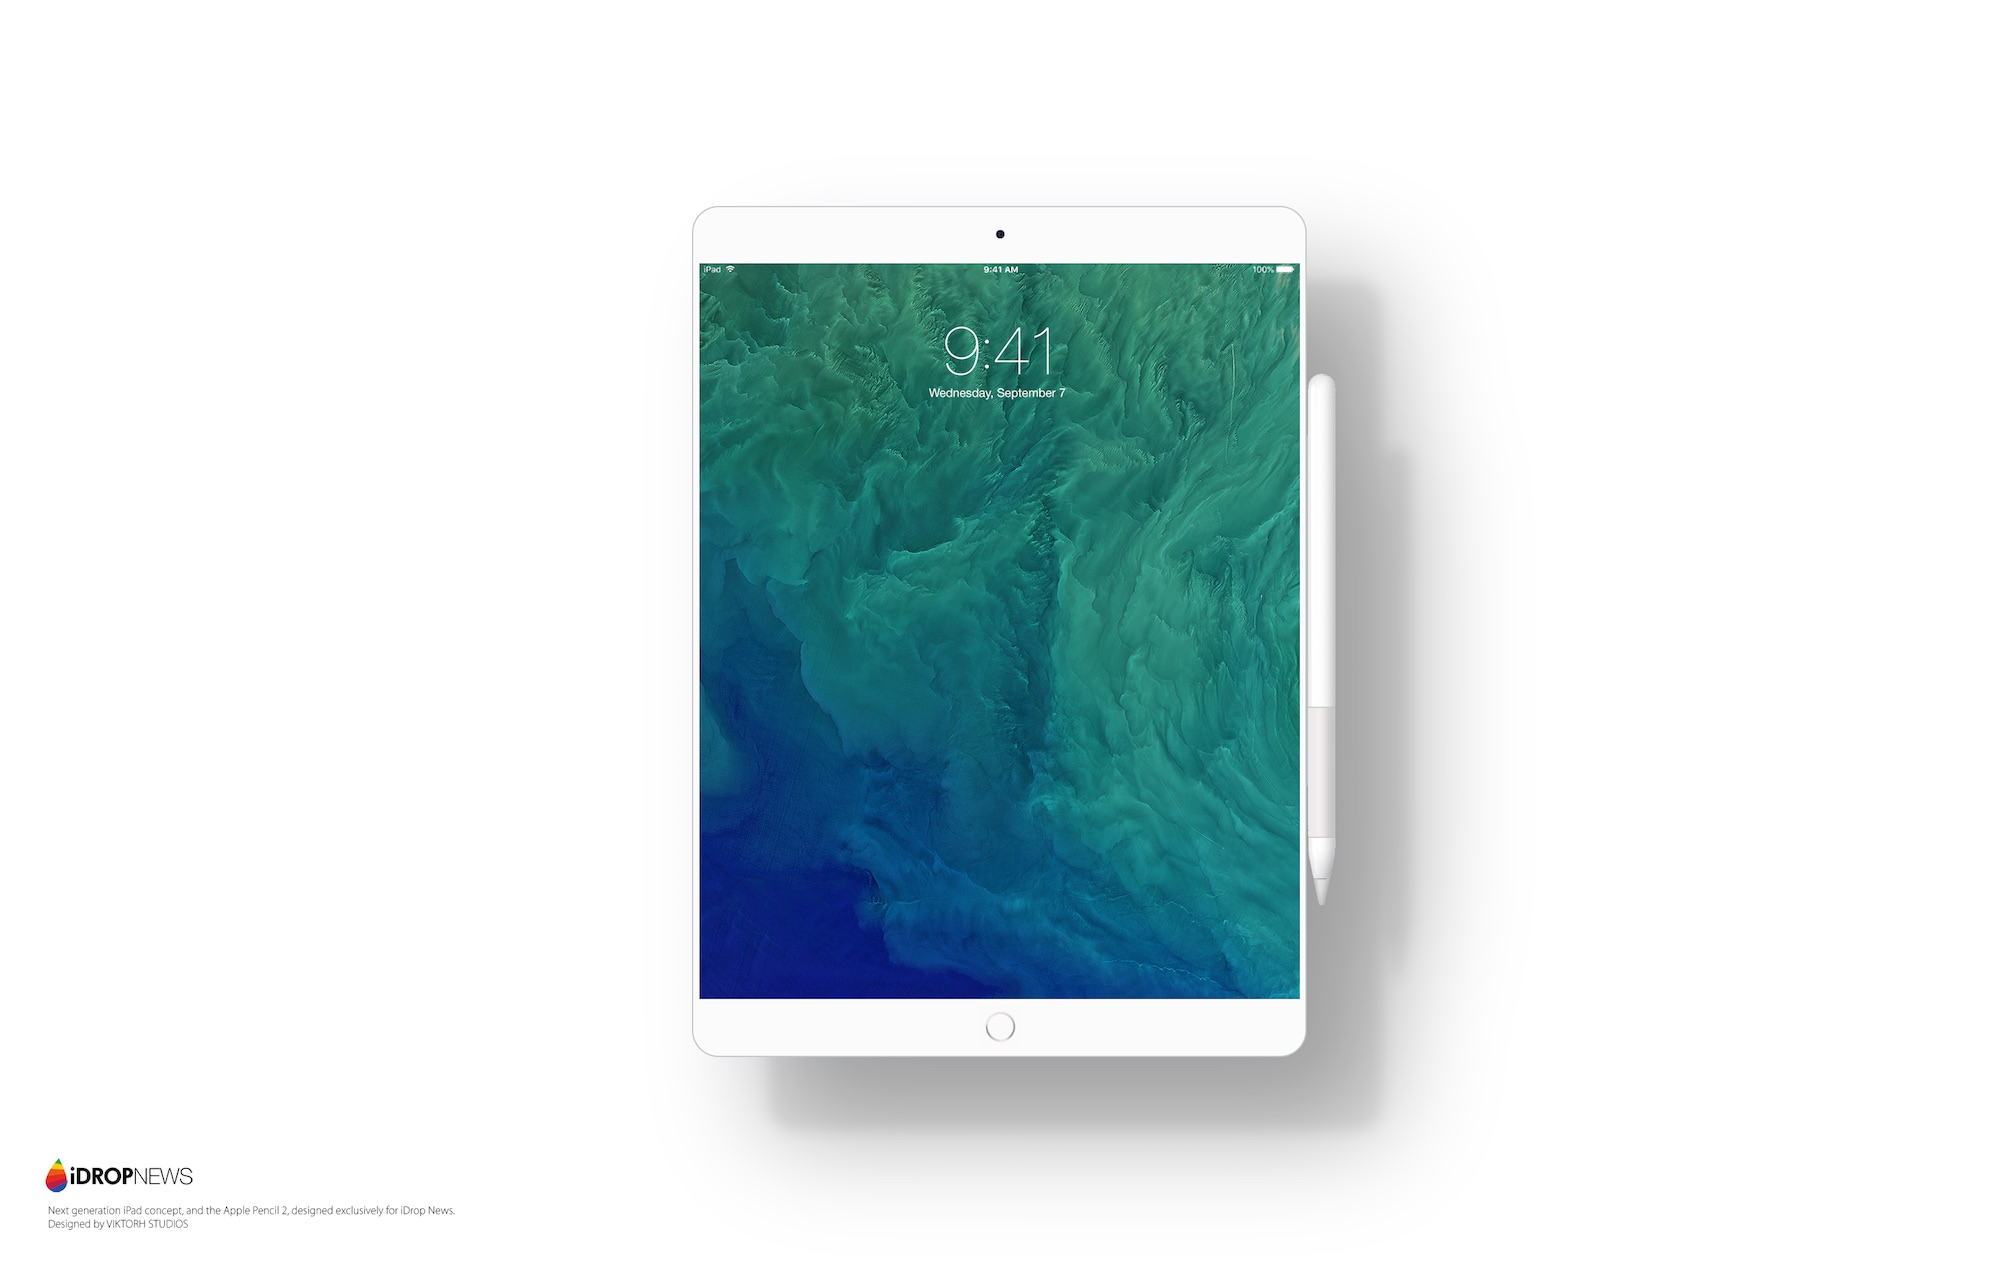 iPad Pro 2 concept in white